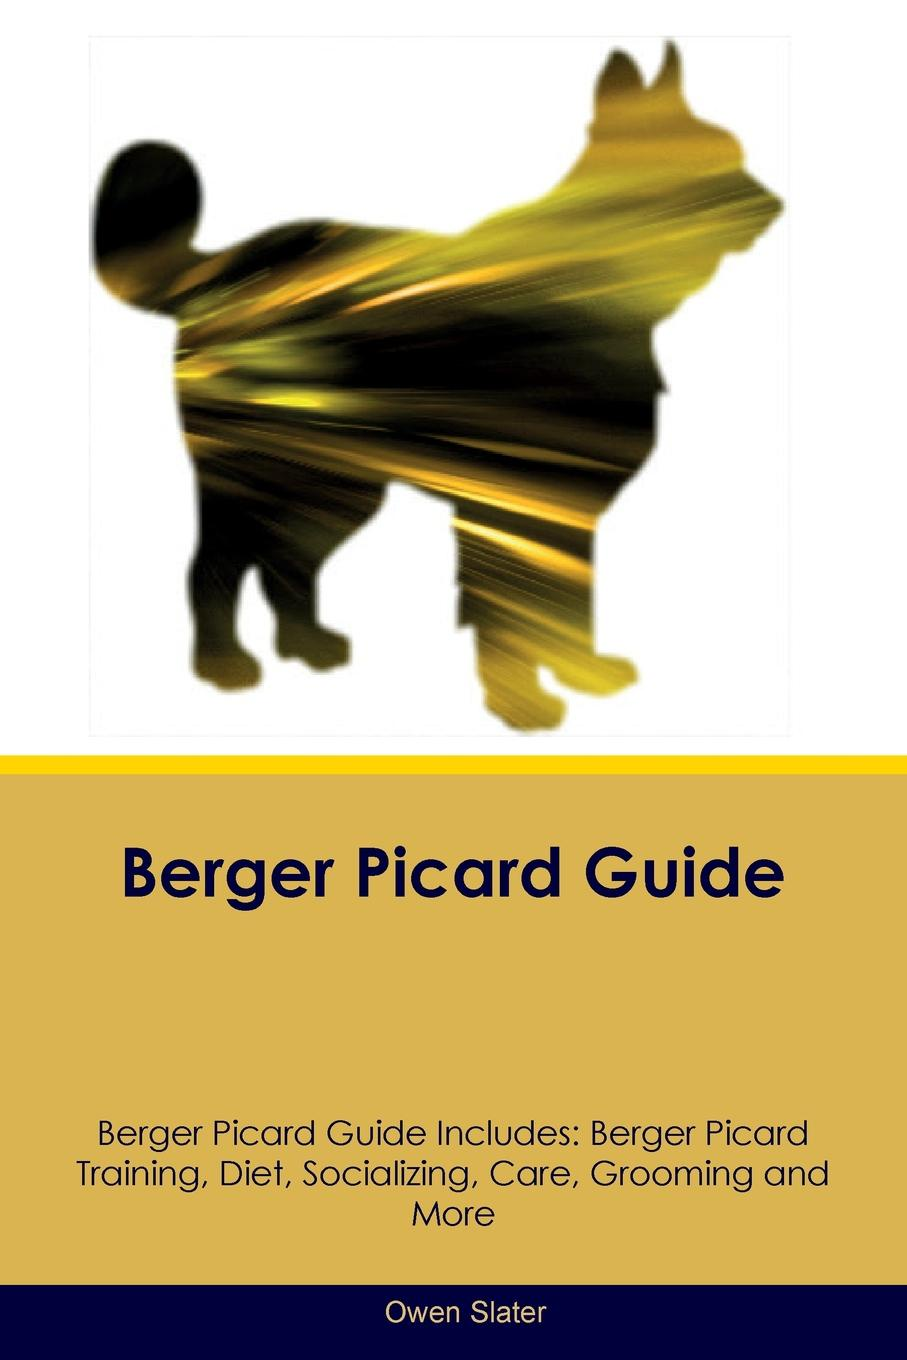 Owen Slater Berger Picard Guide Berger Picard Guide Includes. Berger Picard Training, Diet, Socializing, Care, Grooming, Breeding and More picard сумка picard 8604 37y 001 schwarz